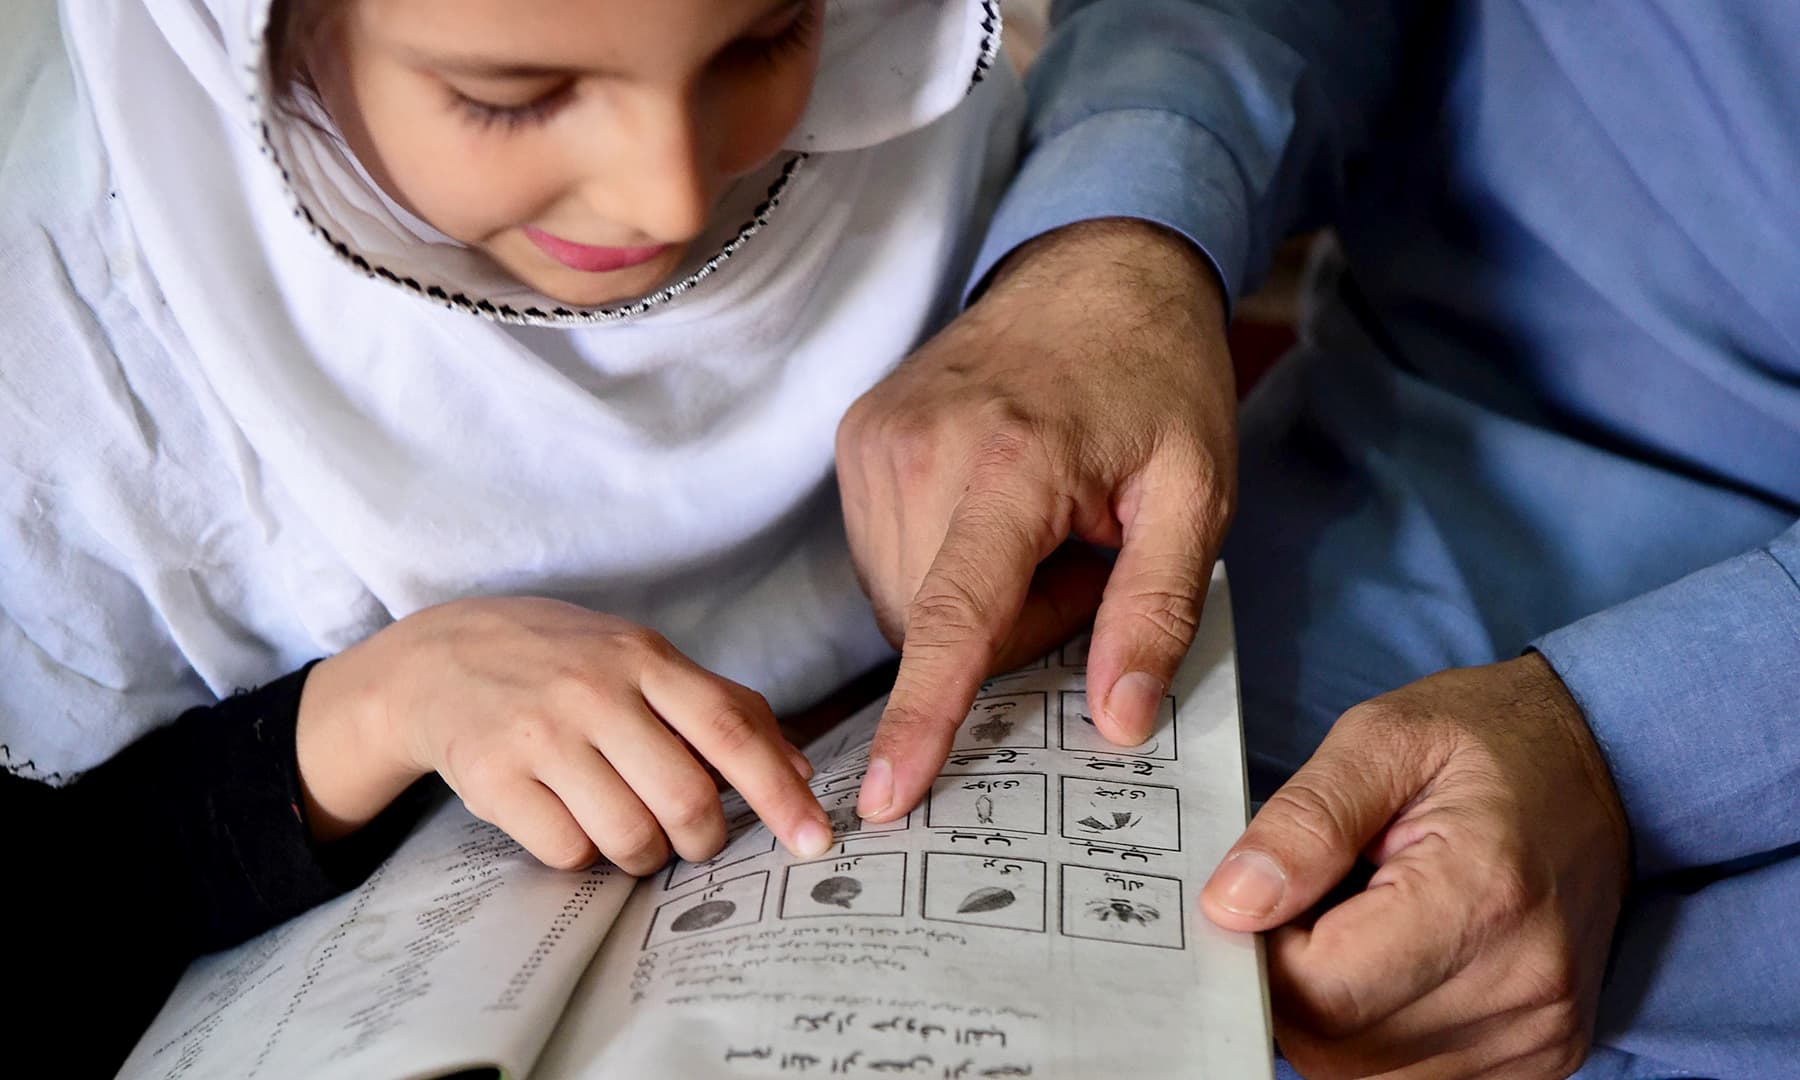 Jan's daughter learns to read the Urdu alphabet at her home in Peshawar. — AFP